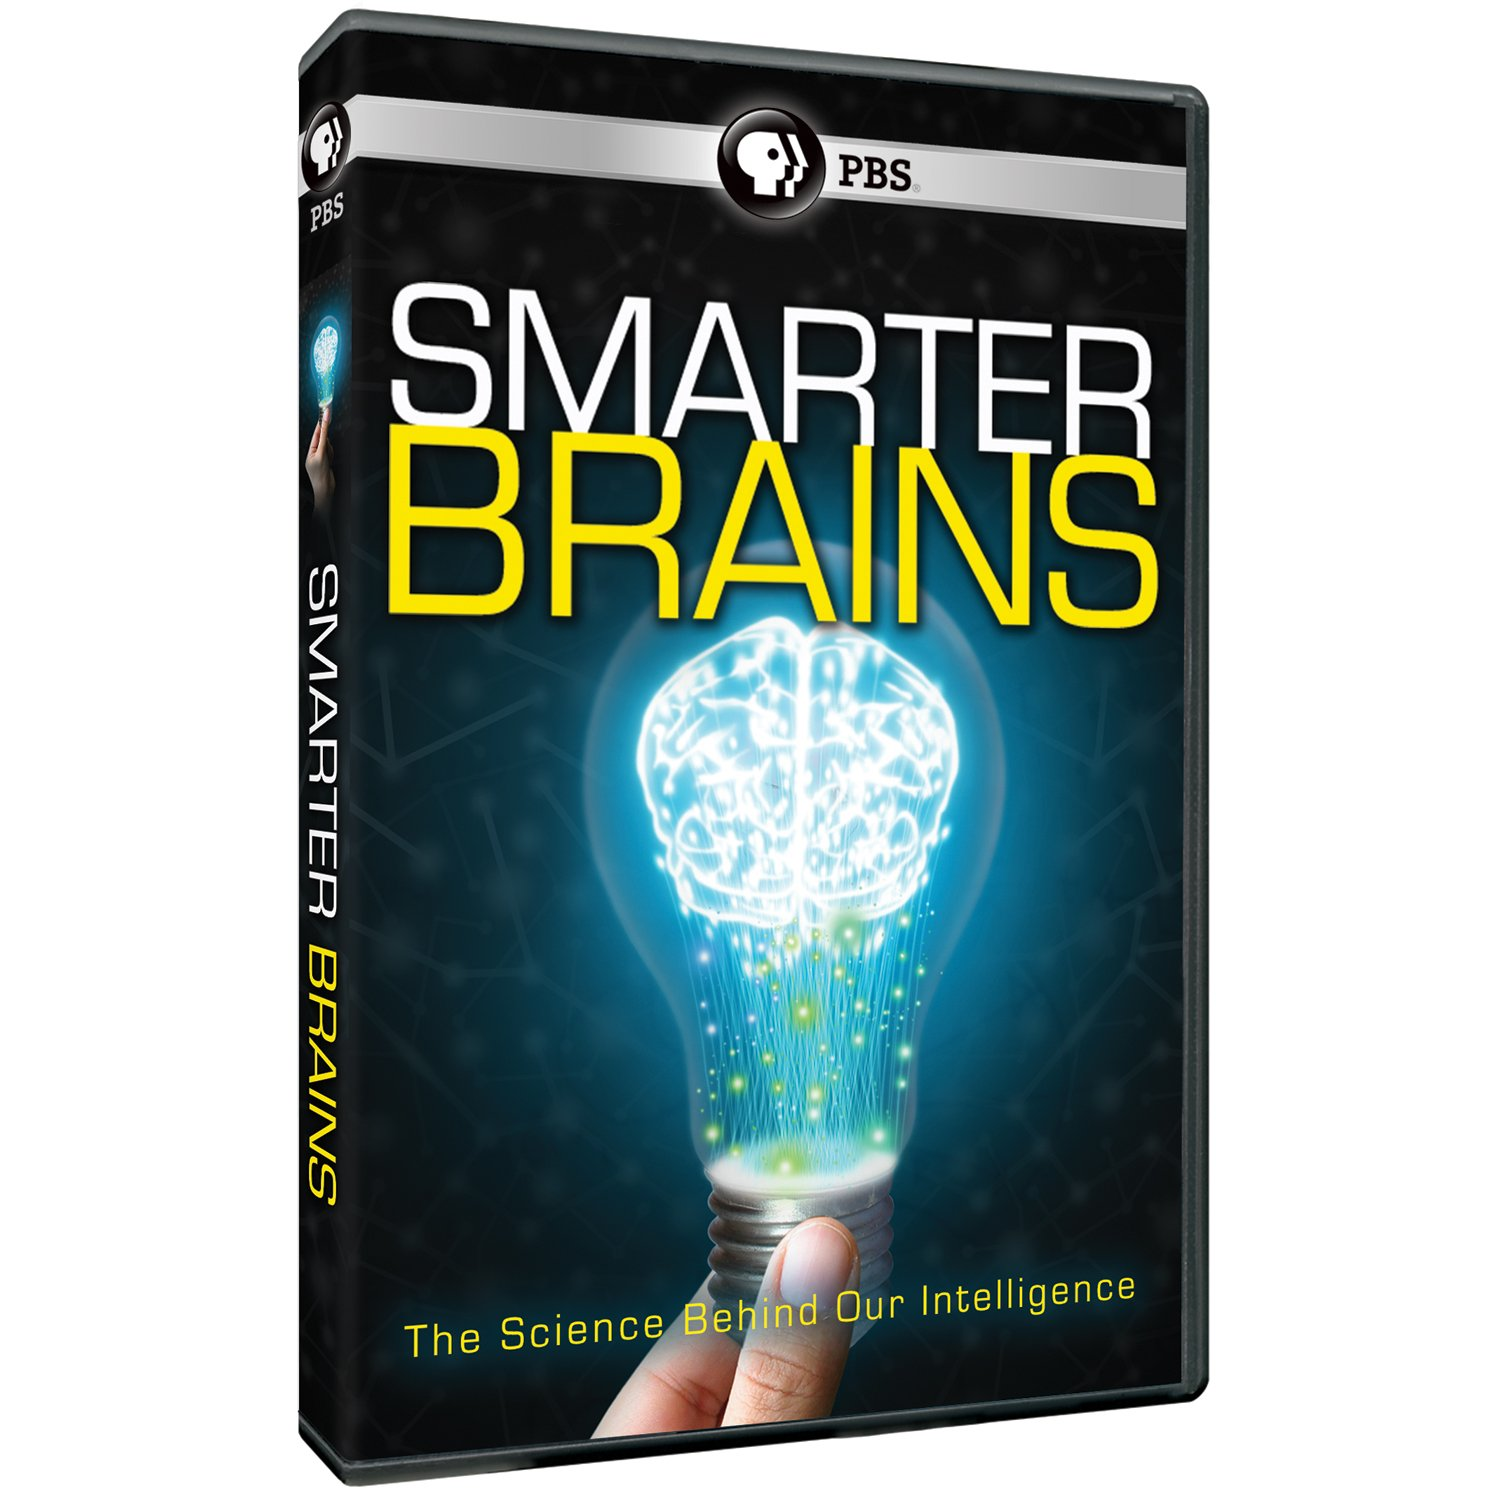 DVD : Smarter Brains (DVD)